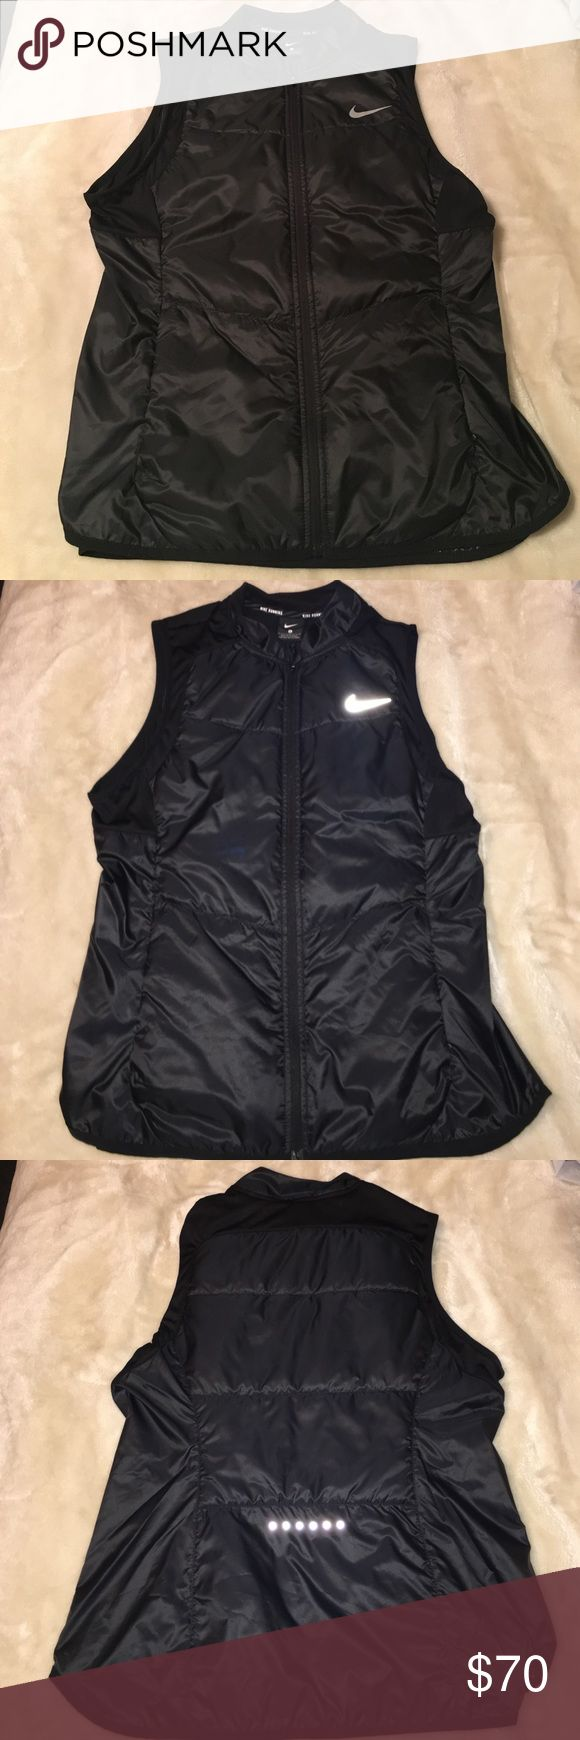 NWT Black Light Weight Nike Vest NWT, got as a gift but never wore it, black with reflective material for running in the dark at night, water proof, super light weight and comfortable!! Nike Jackets & Coats Vests